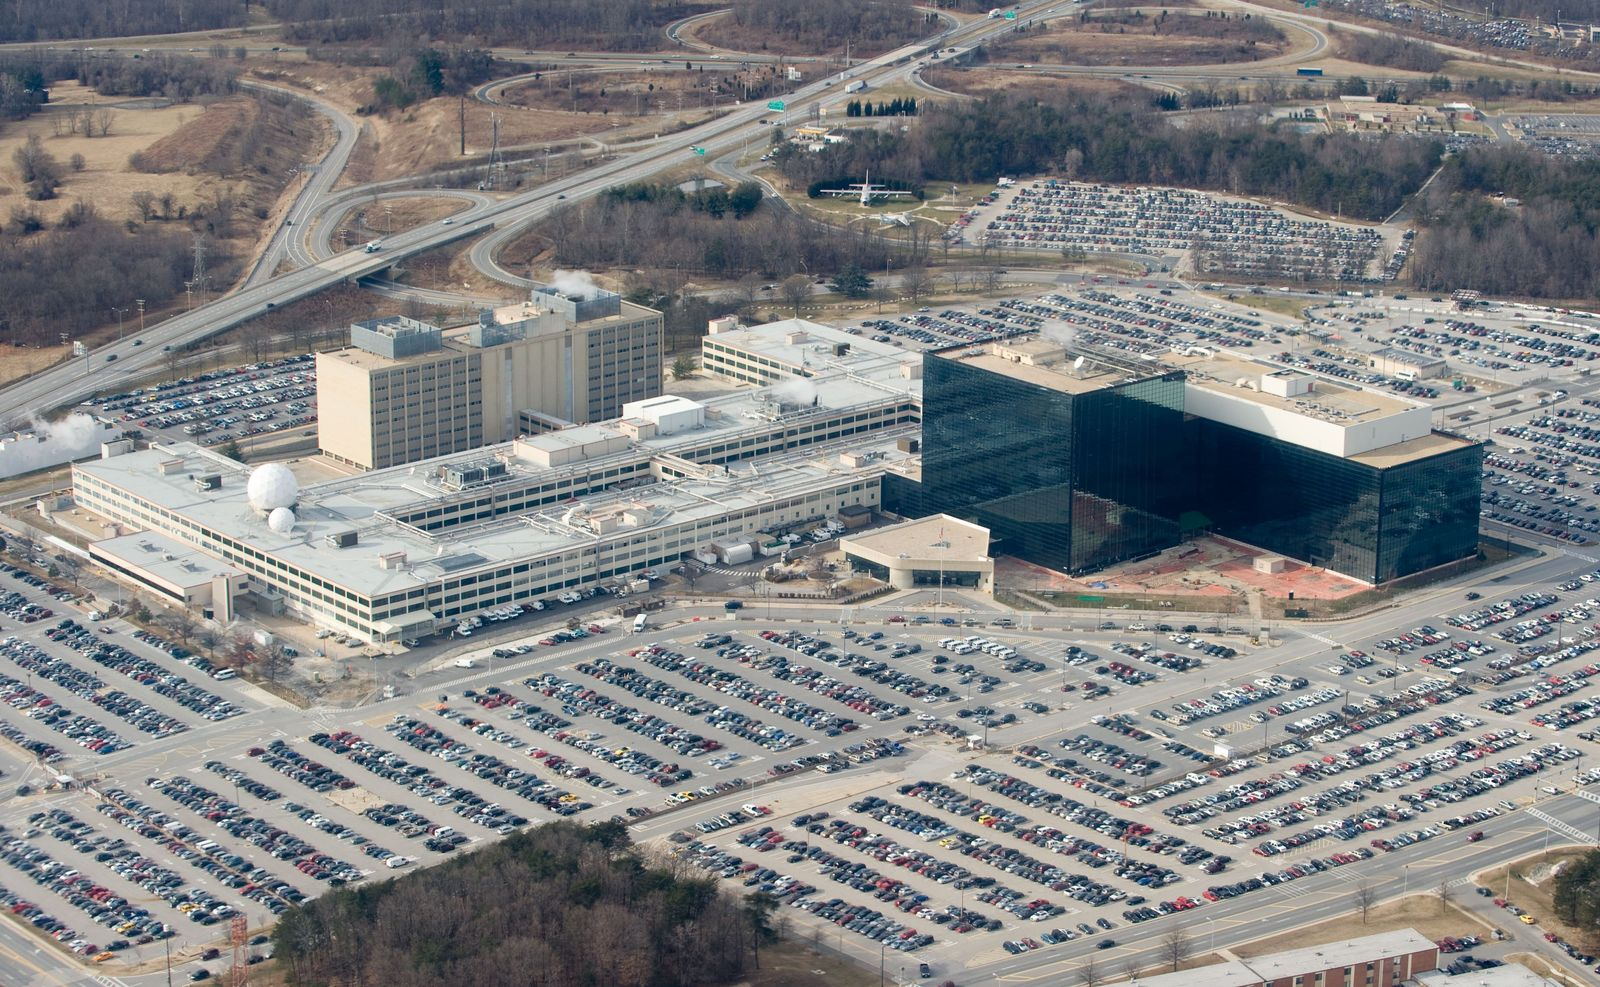 NSA Fort Meade Maryland